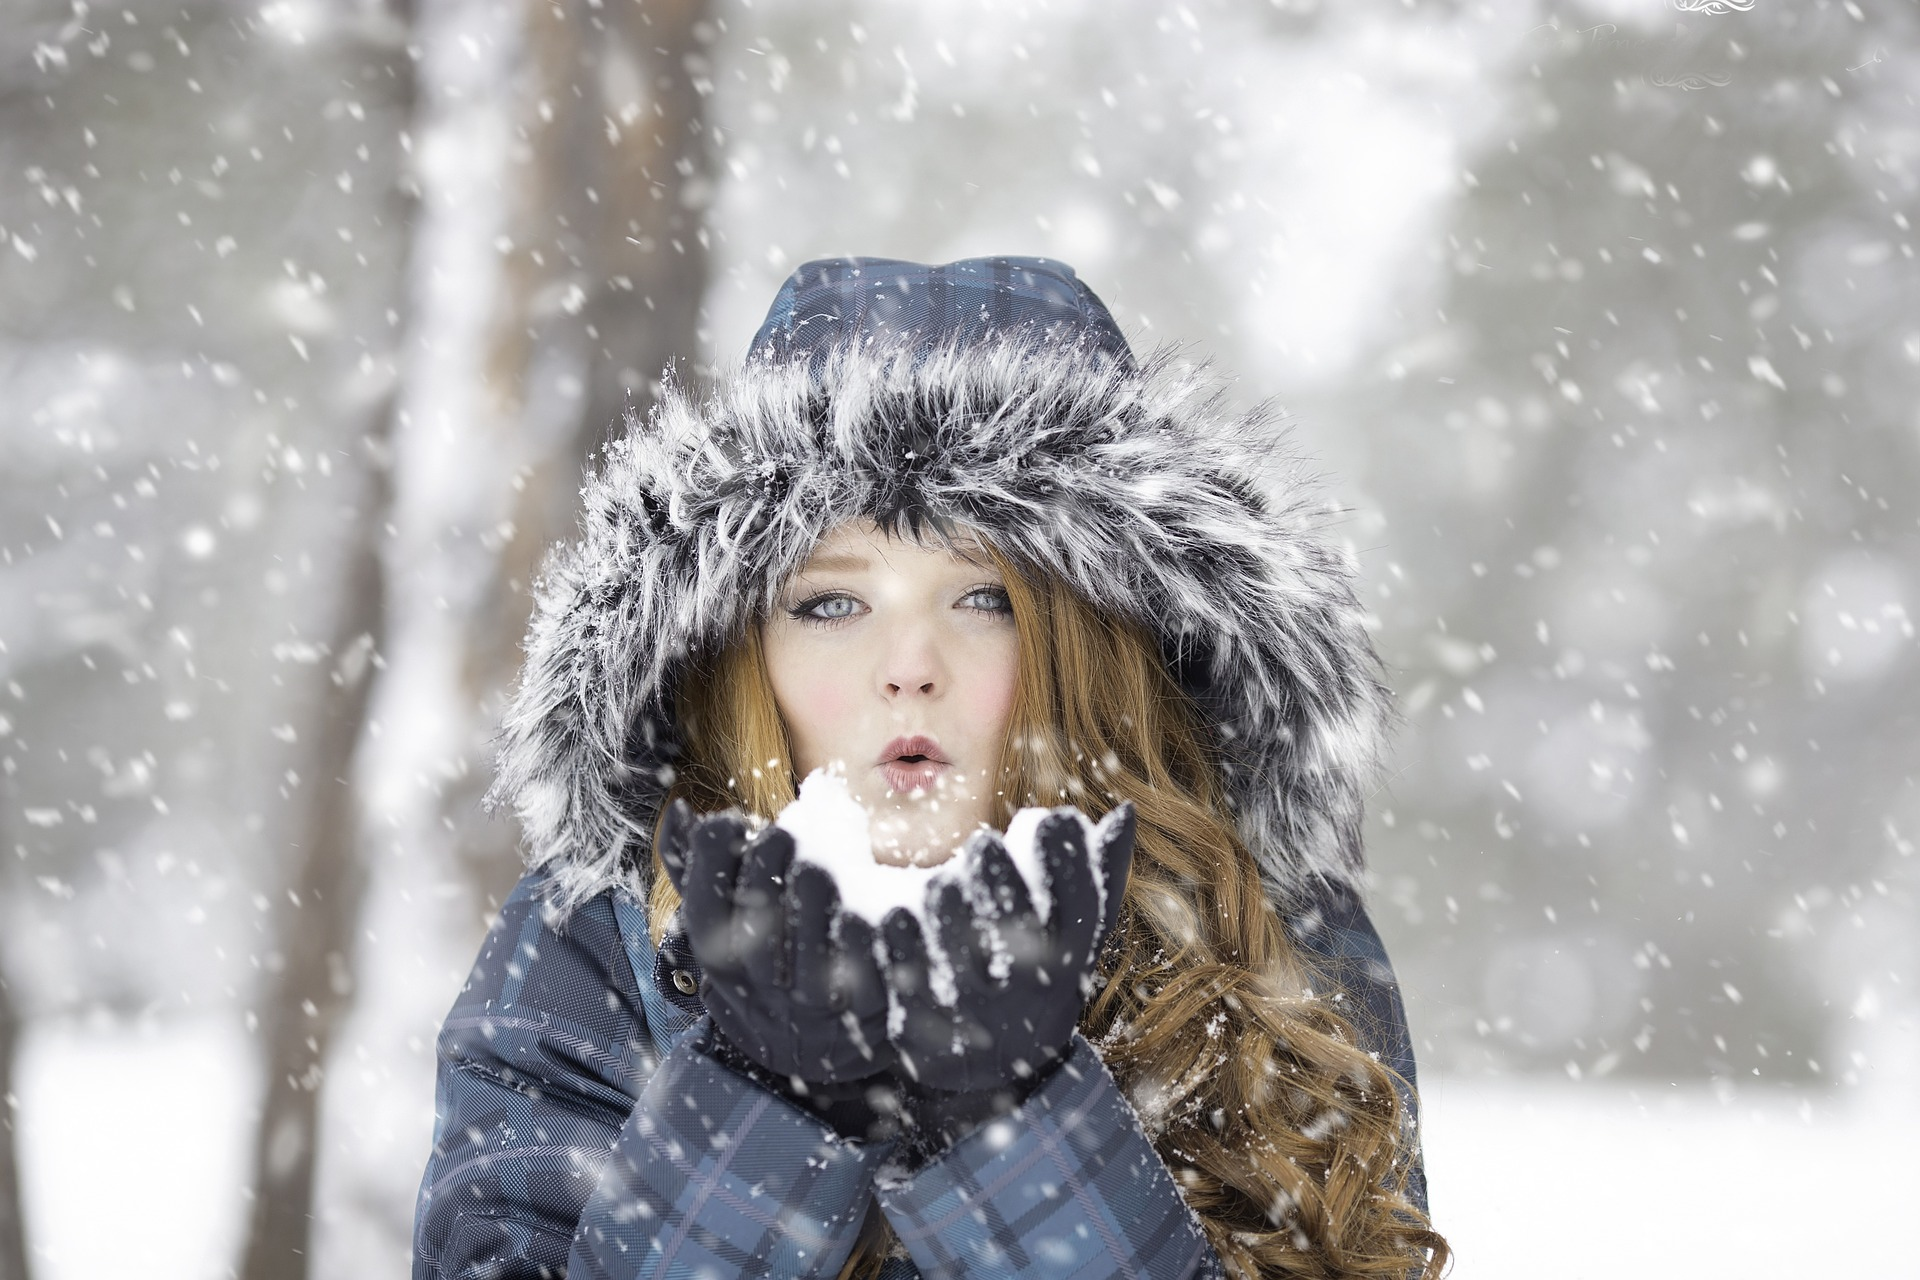 Tips for Eye Care in Cold Winter Months